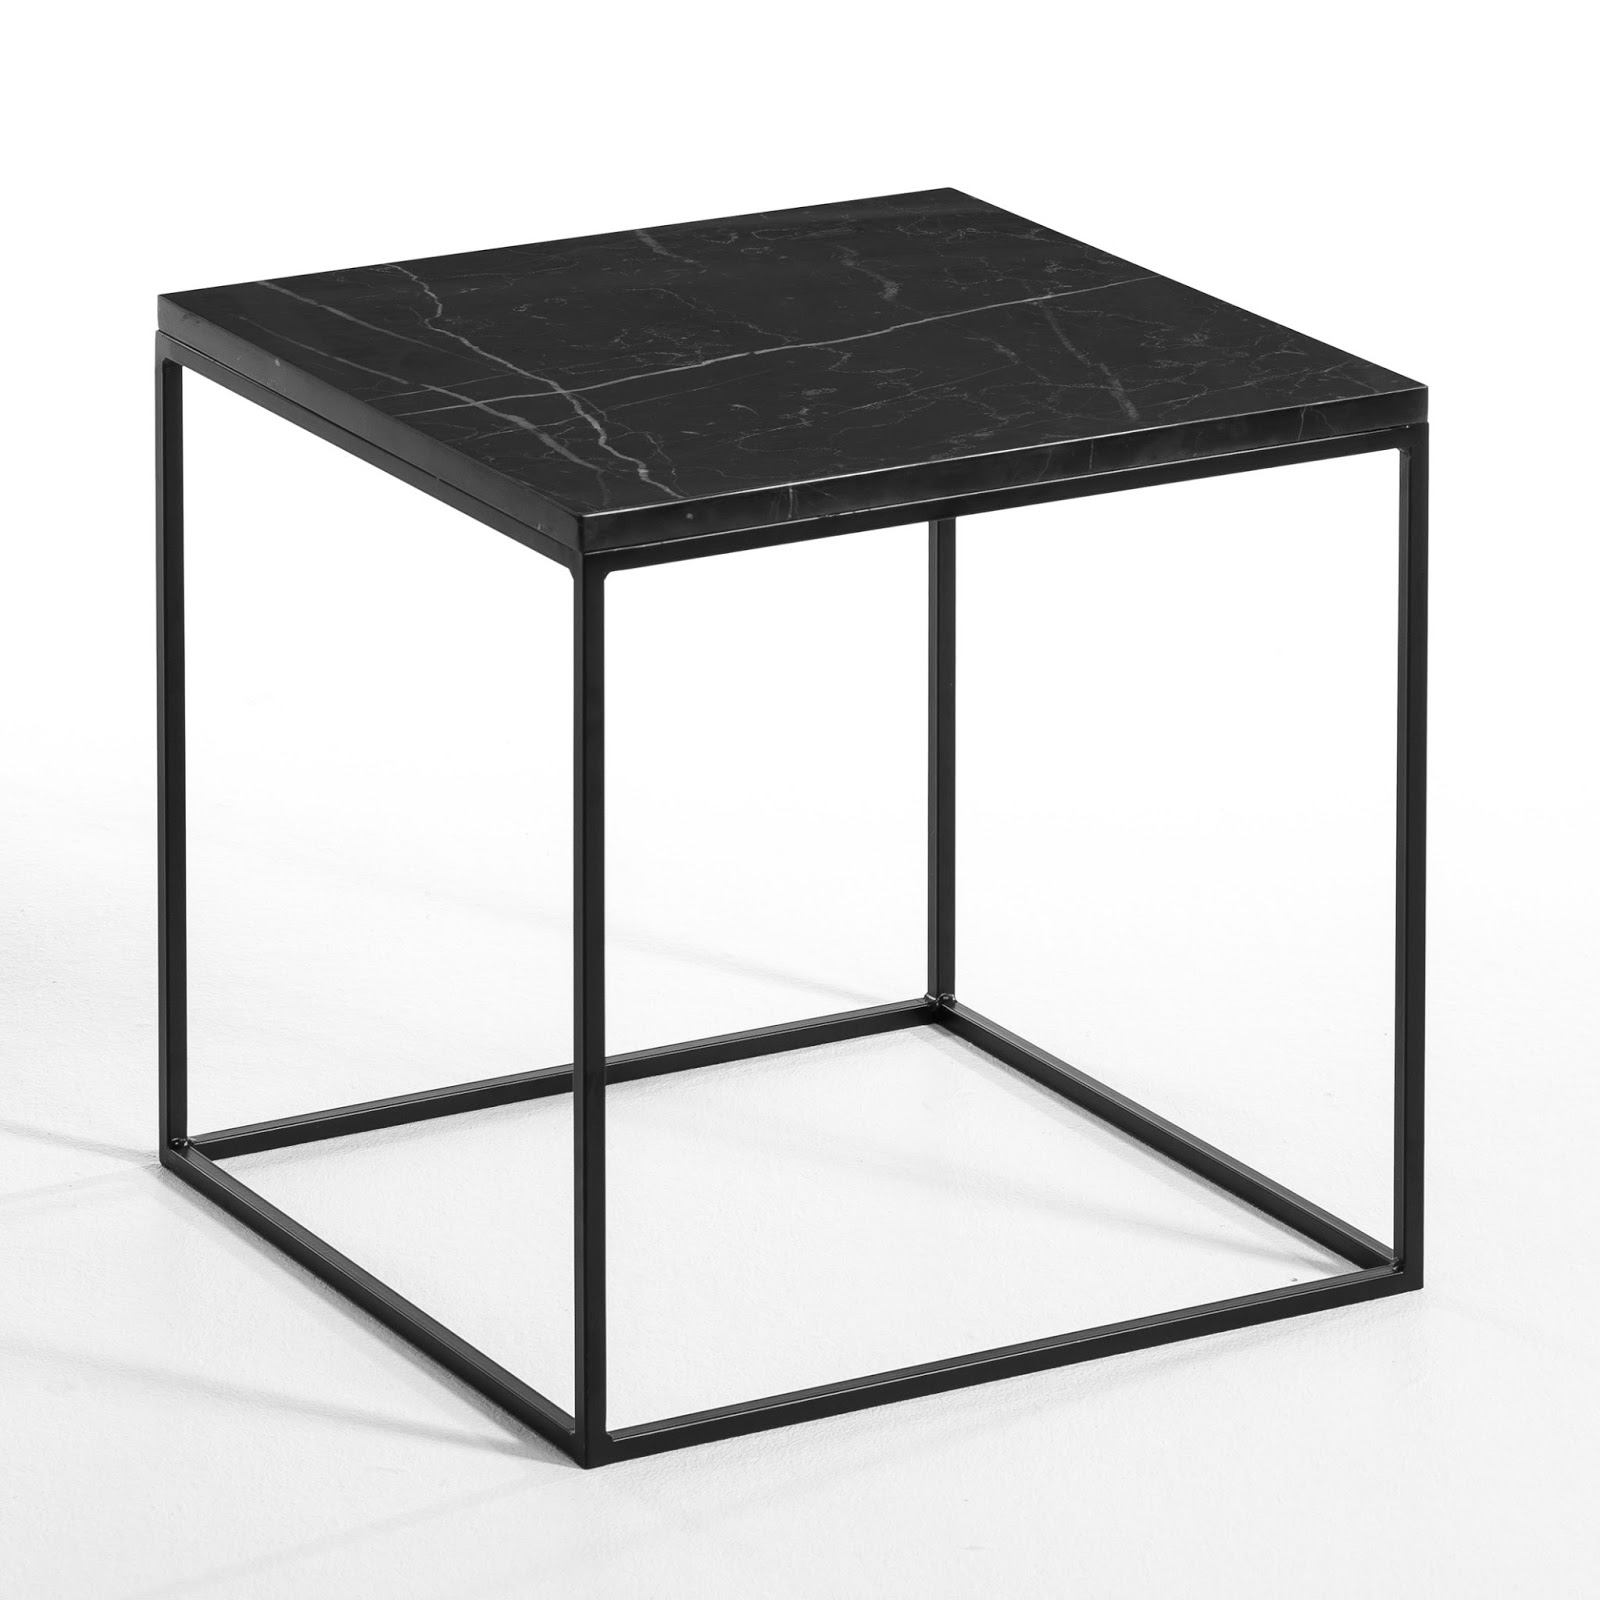 bout%2Bde%2Bcanape%2Bmarbre%2Bnoir Meilleur De De Table Basse Metal Verre